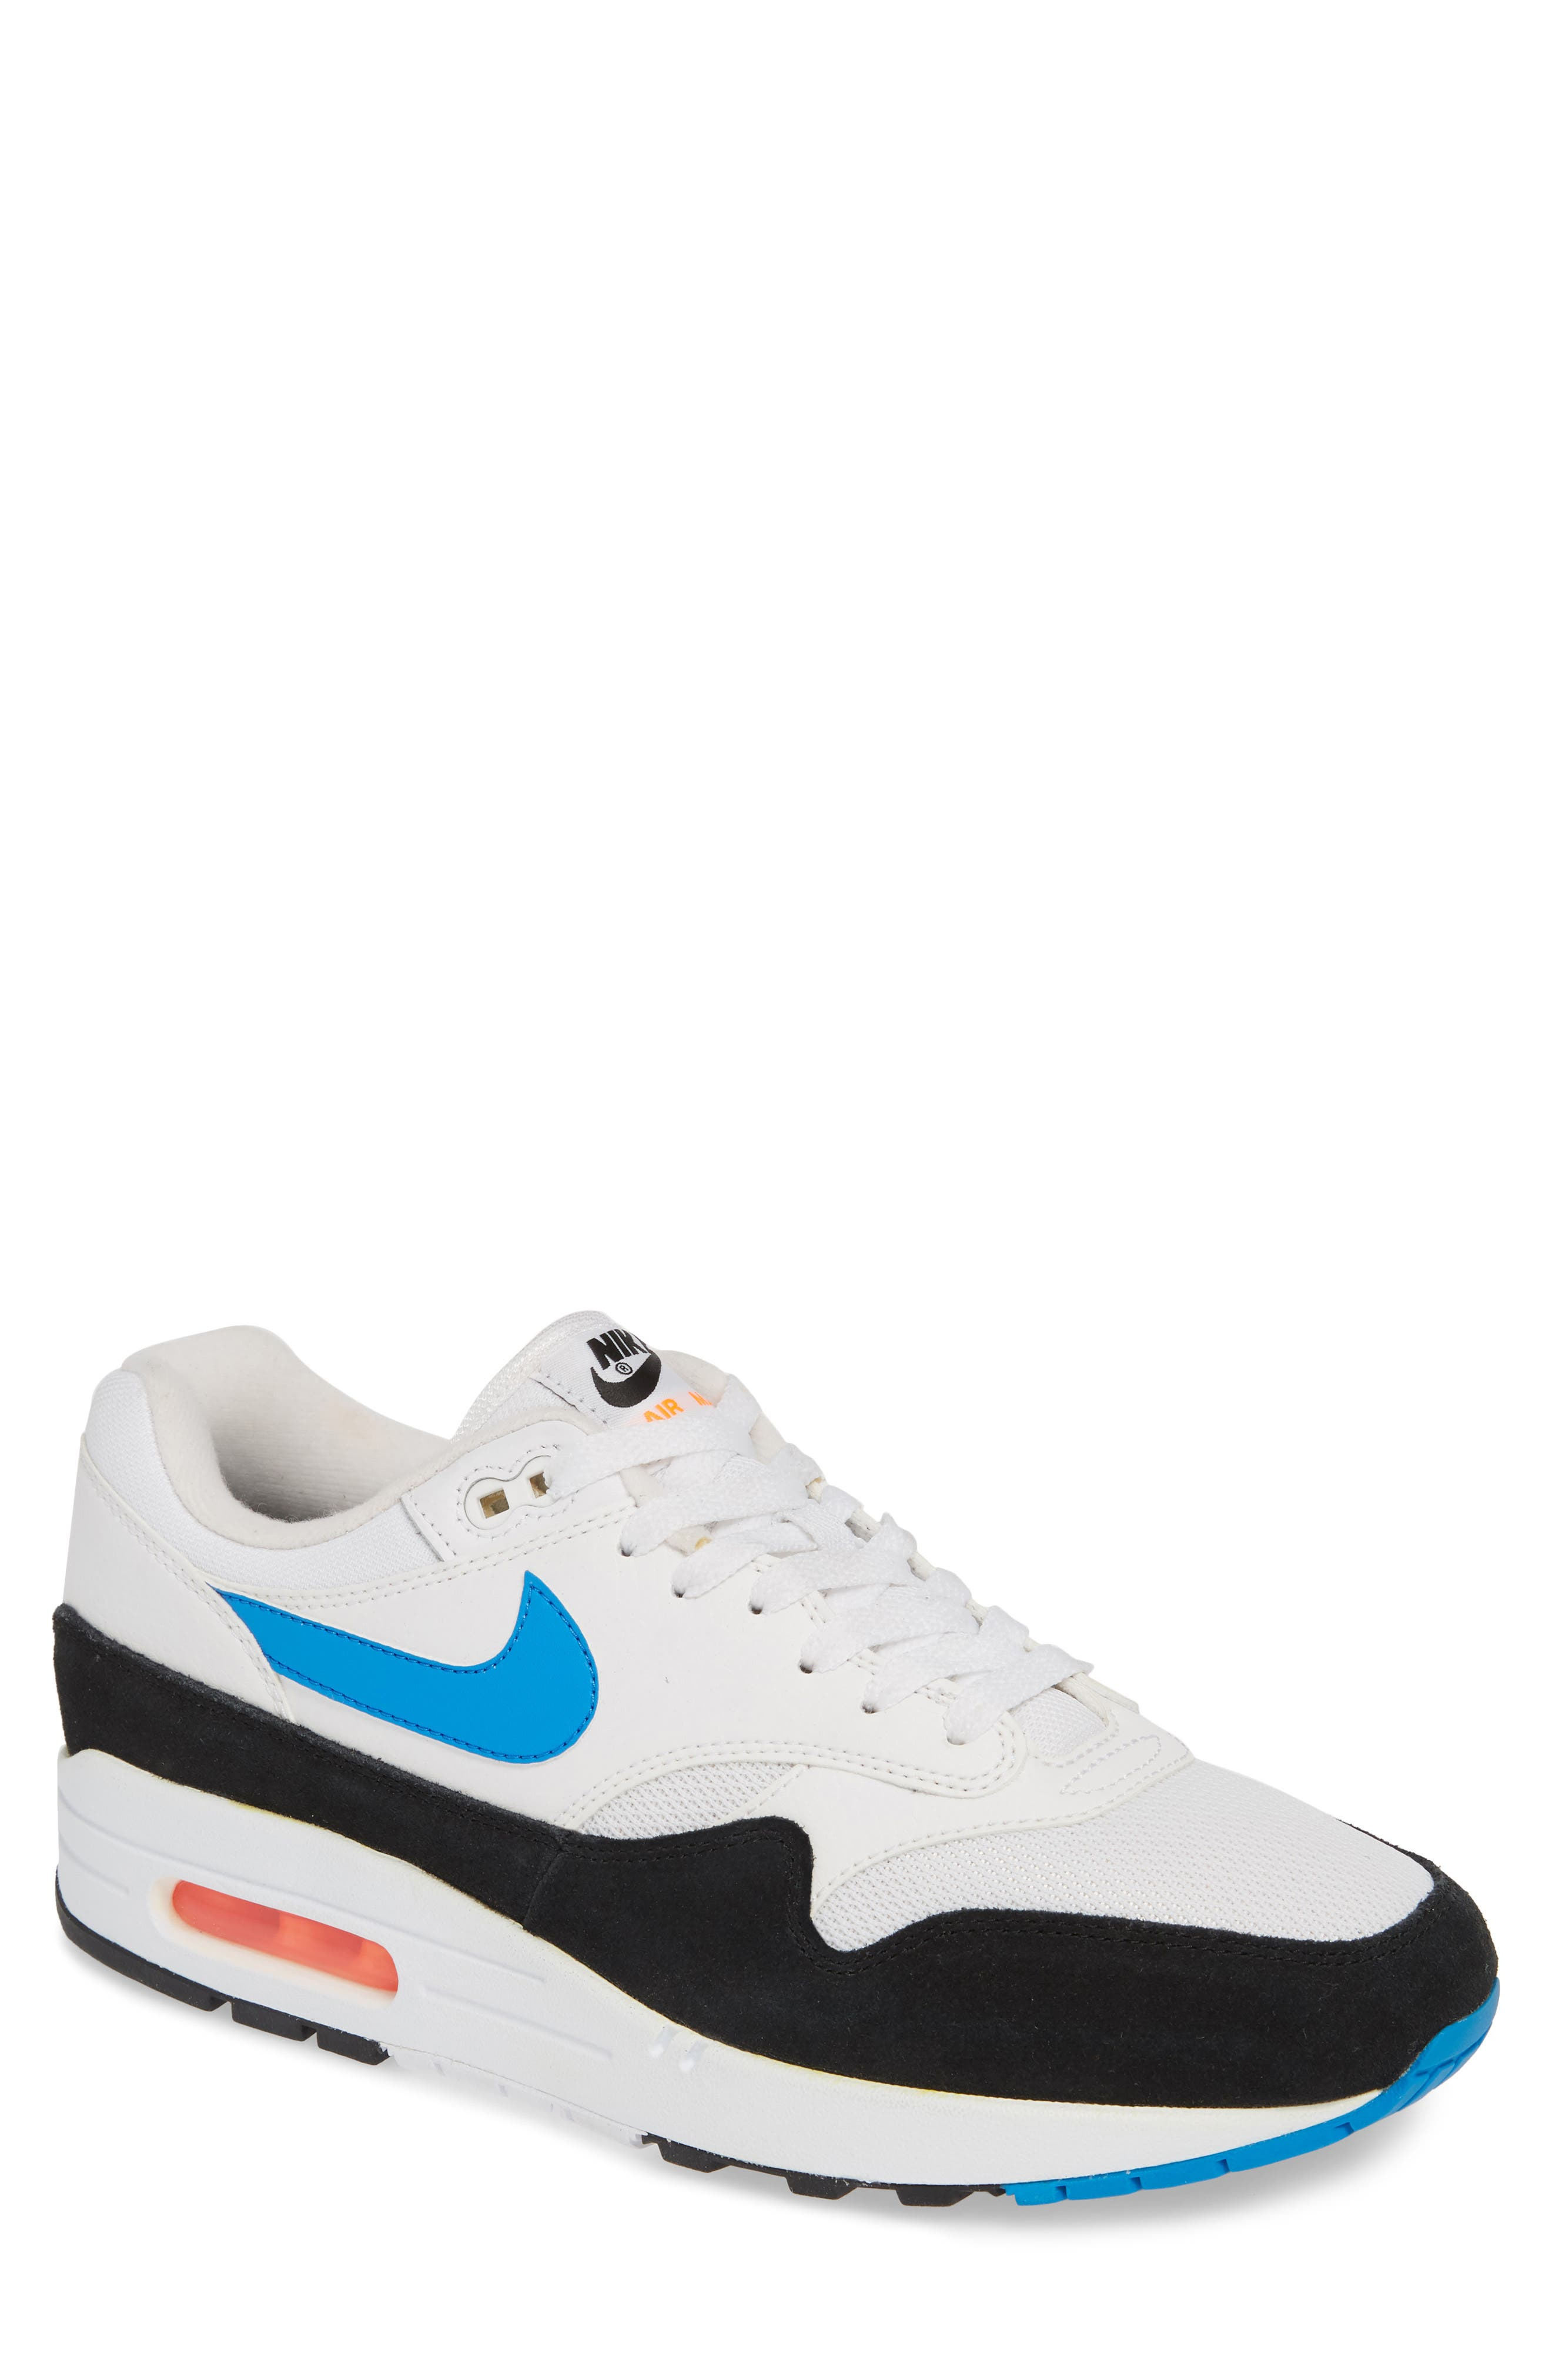 e56d6bccb6a4 Nike Men s Shoes and Sneakers